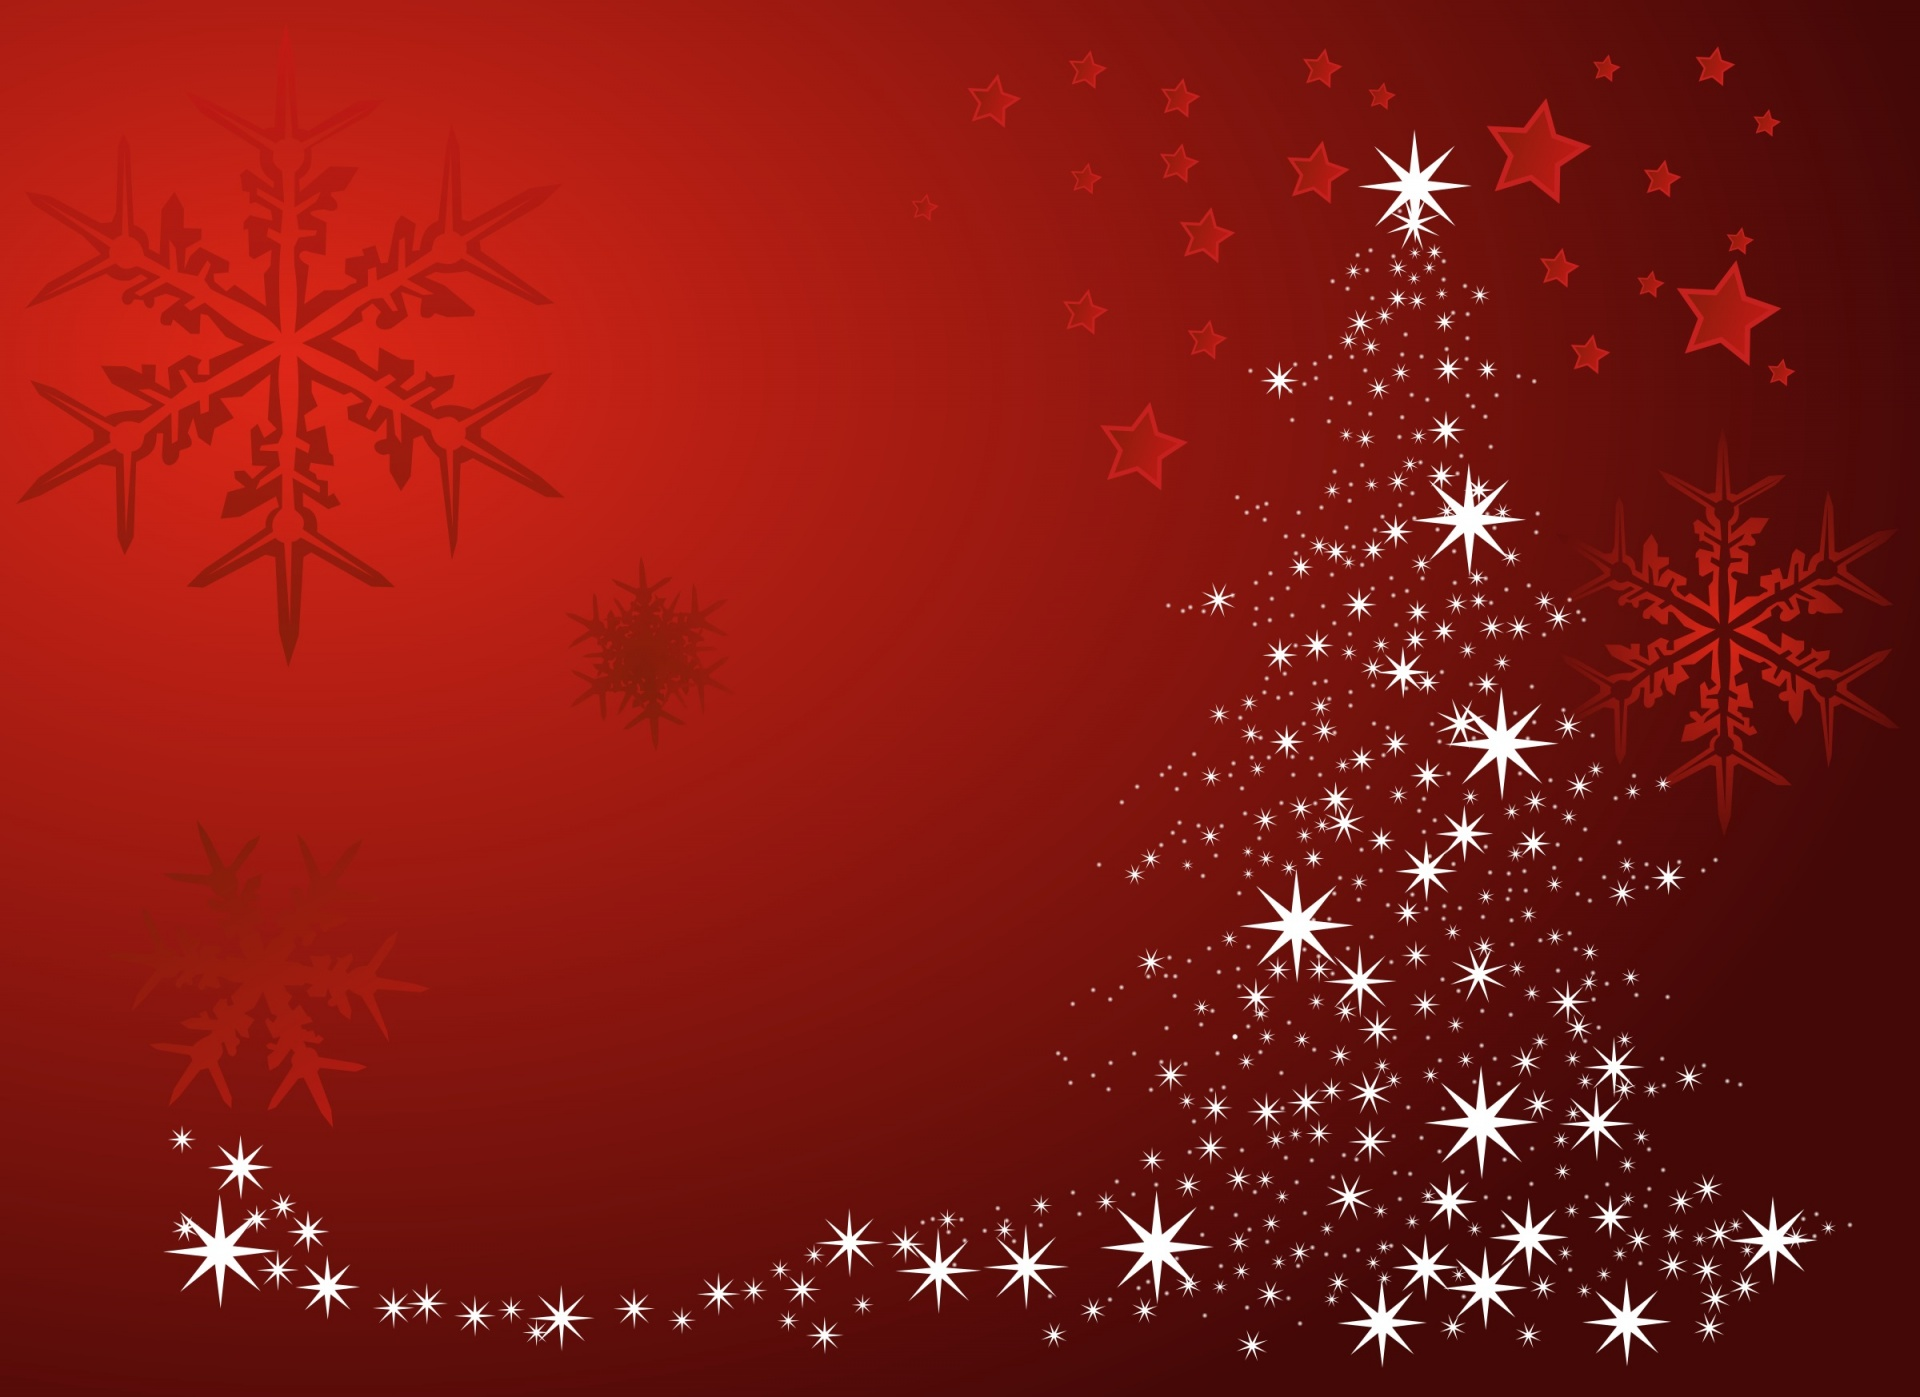 Free photo holiday background xmas traditional for Natale immagini per desktop